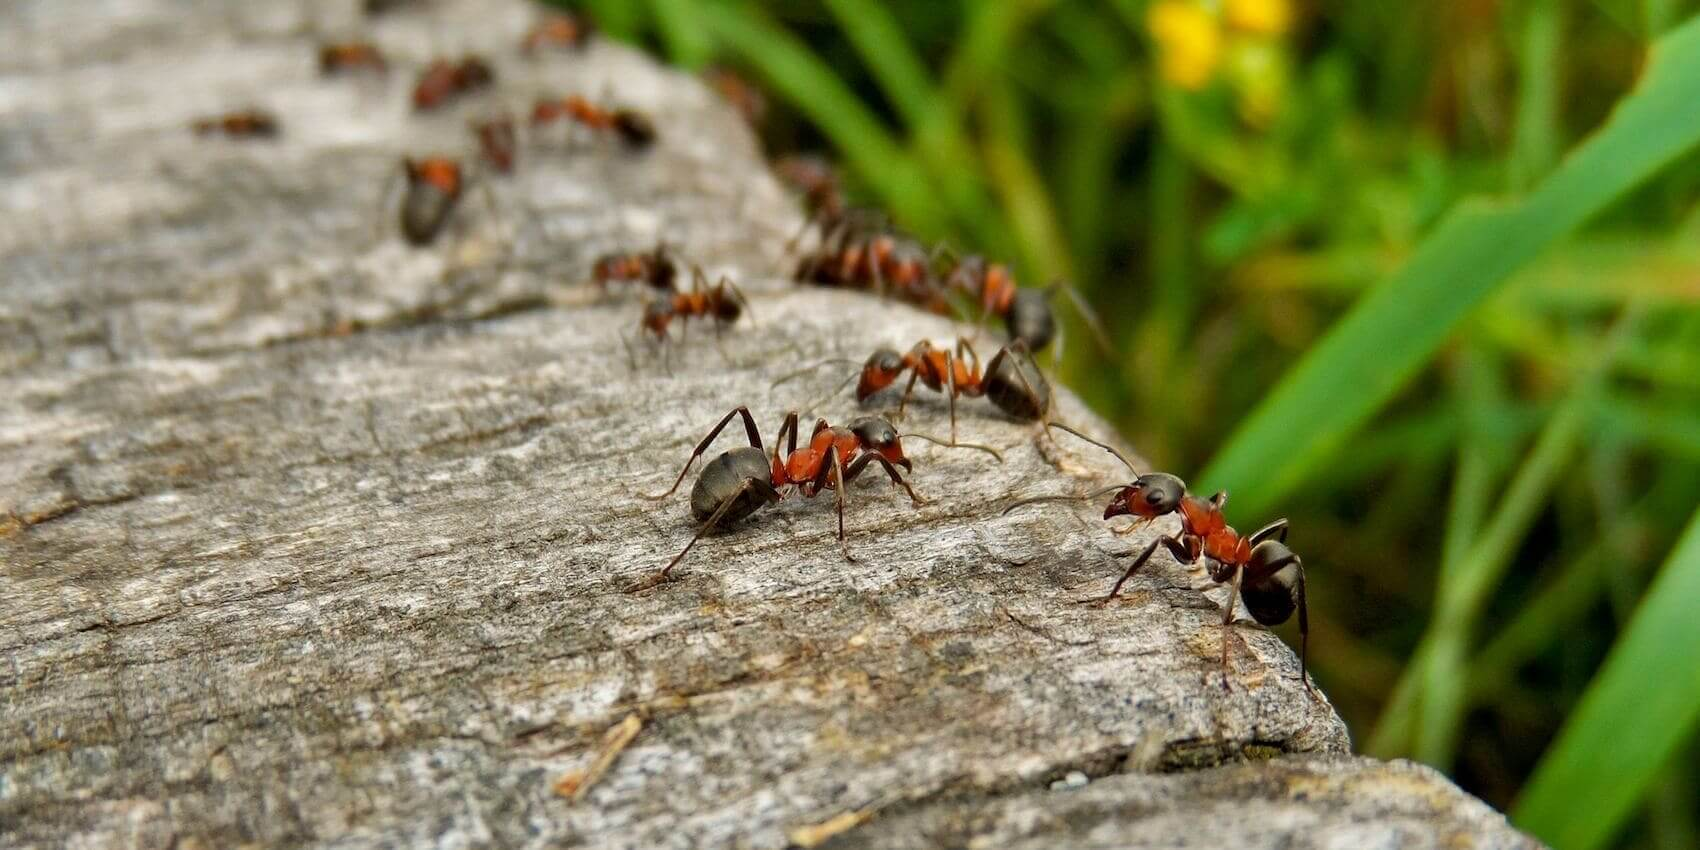 Ant Habitat Where Do Ants Live In Your House And In The World